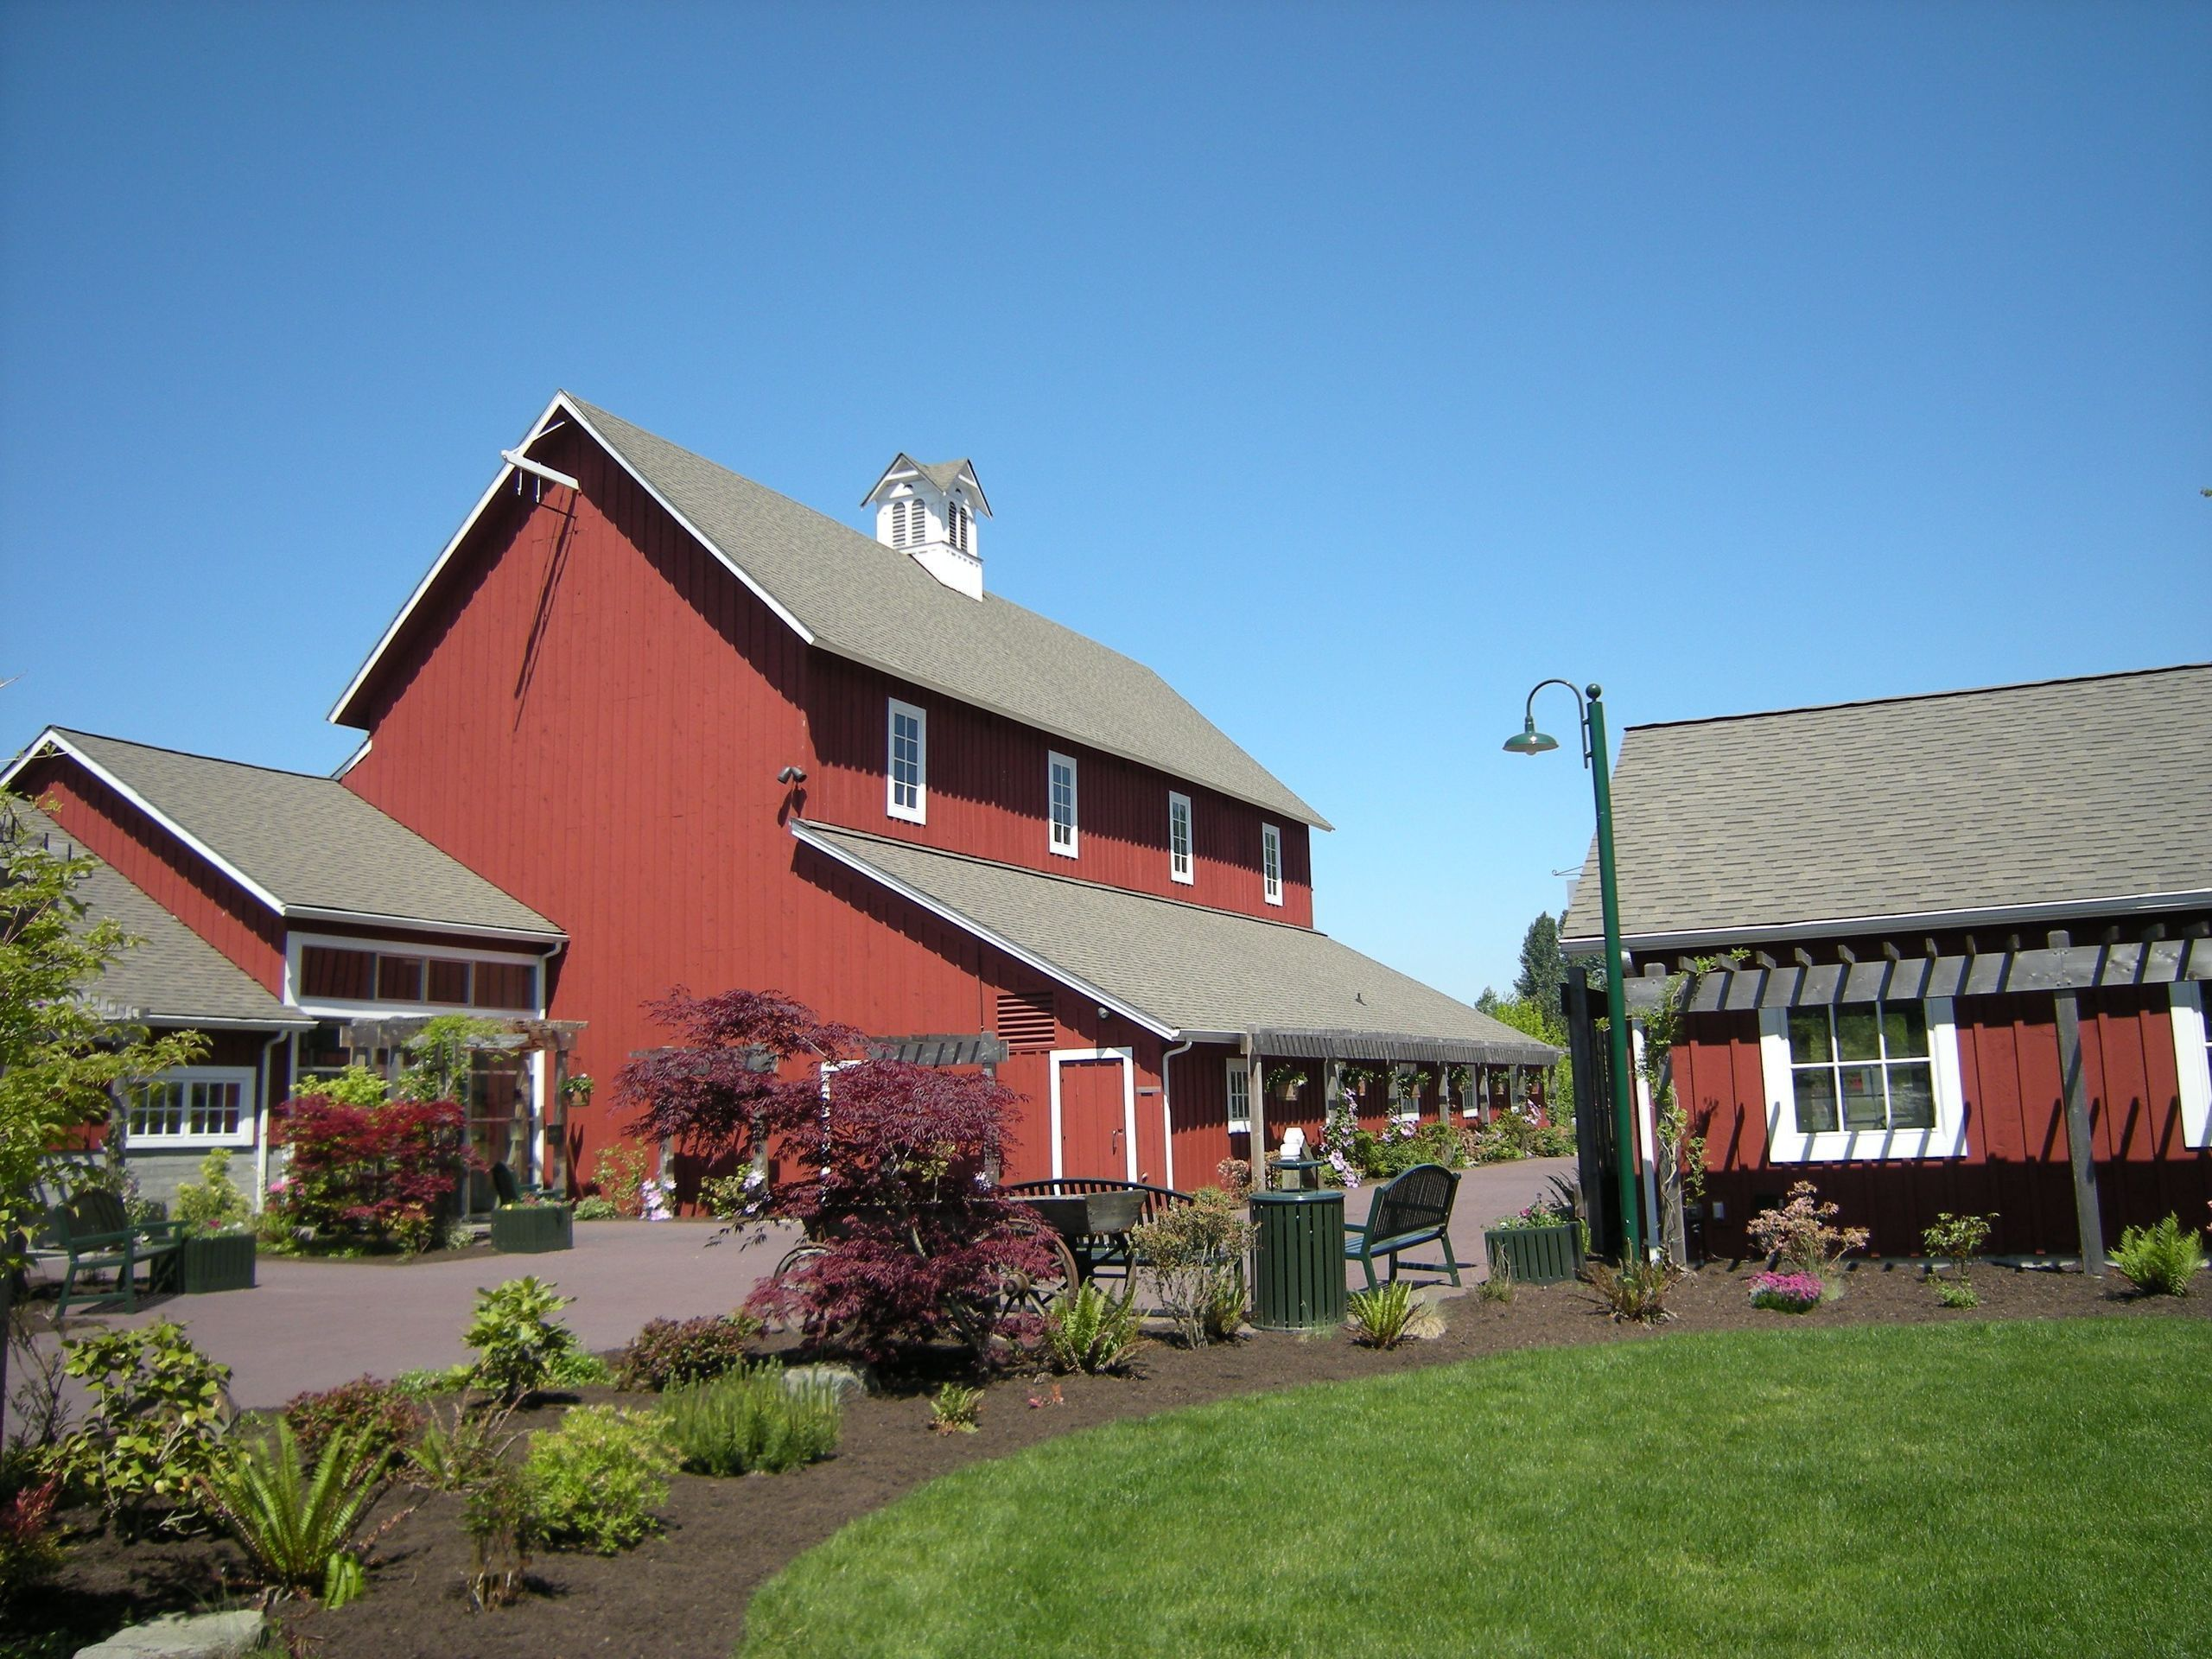 Issaquah,_WA_-_Pickering_Farm_02